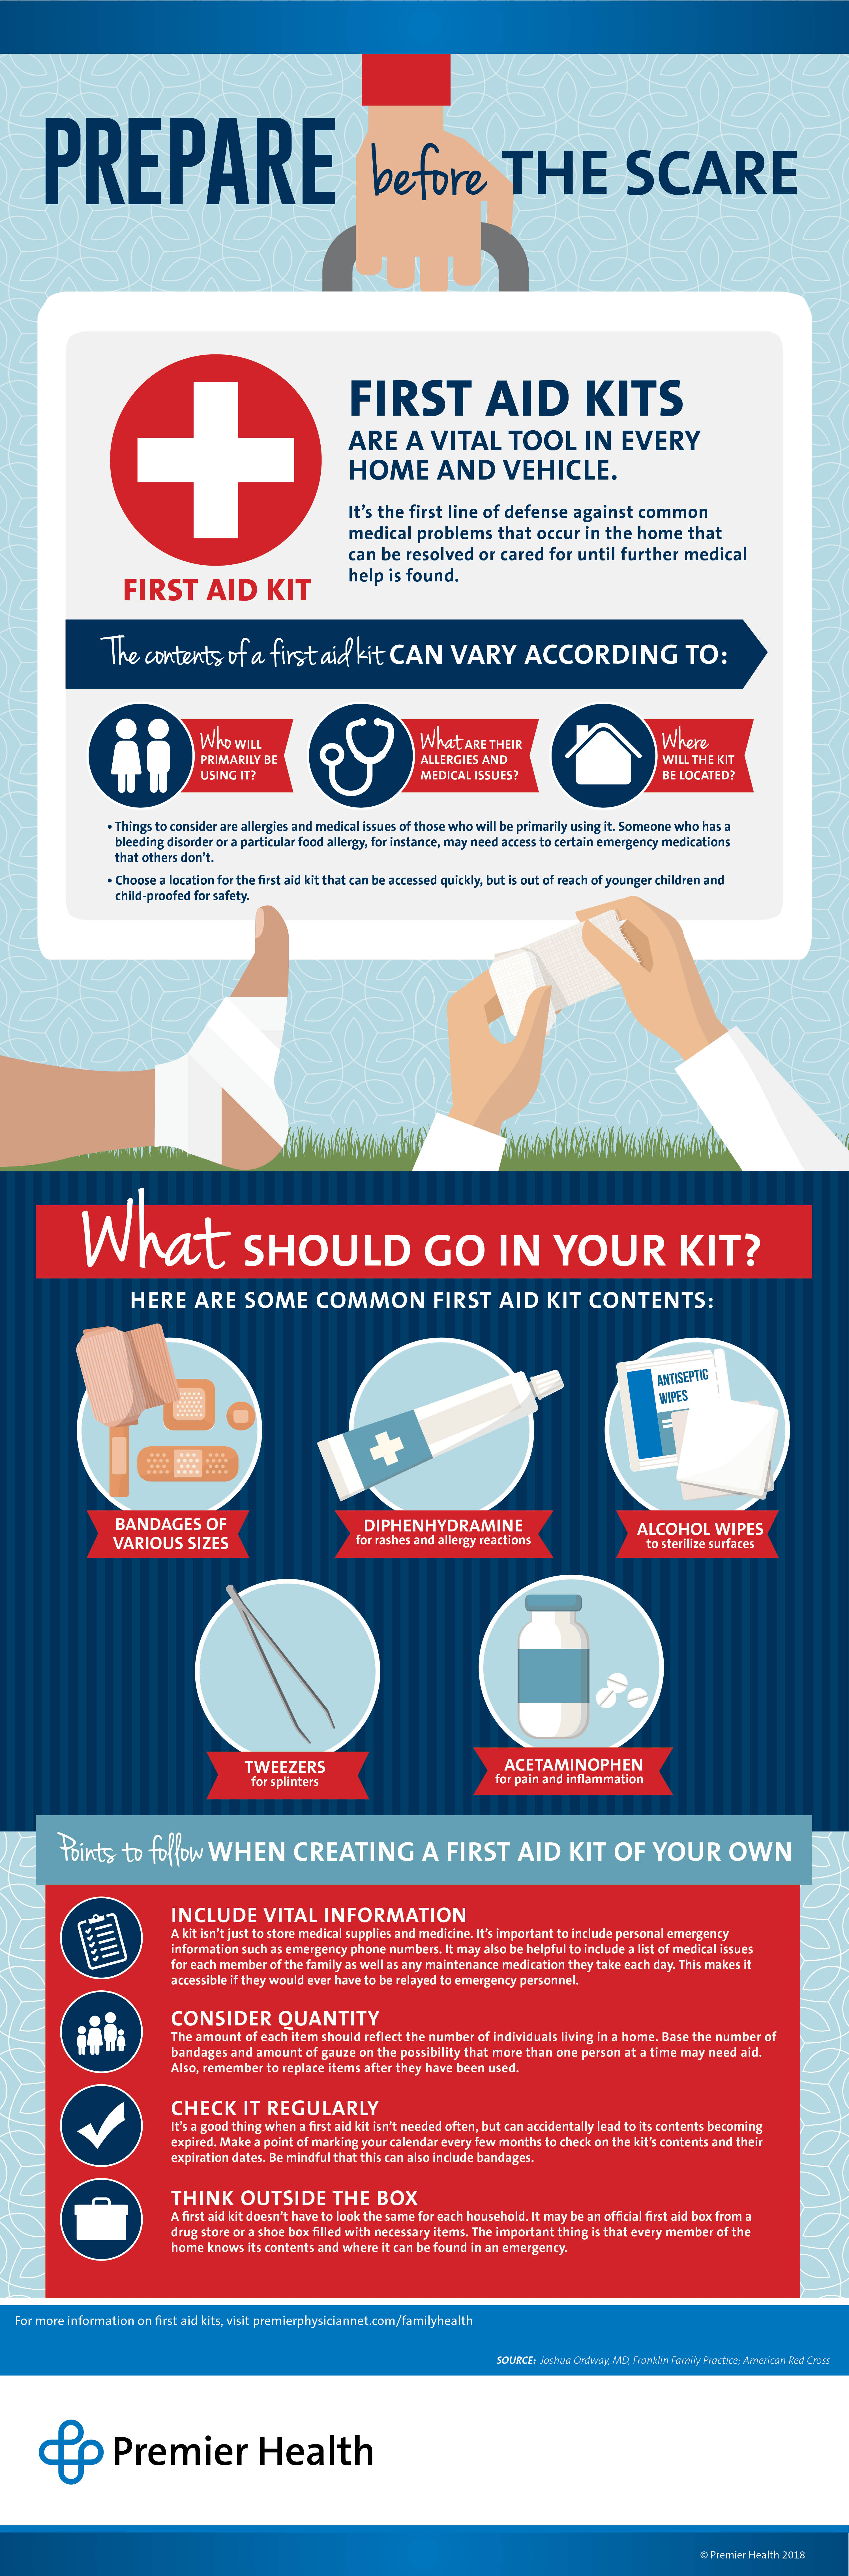 First Aid Kits Infographic